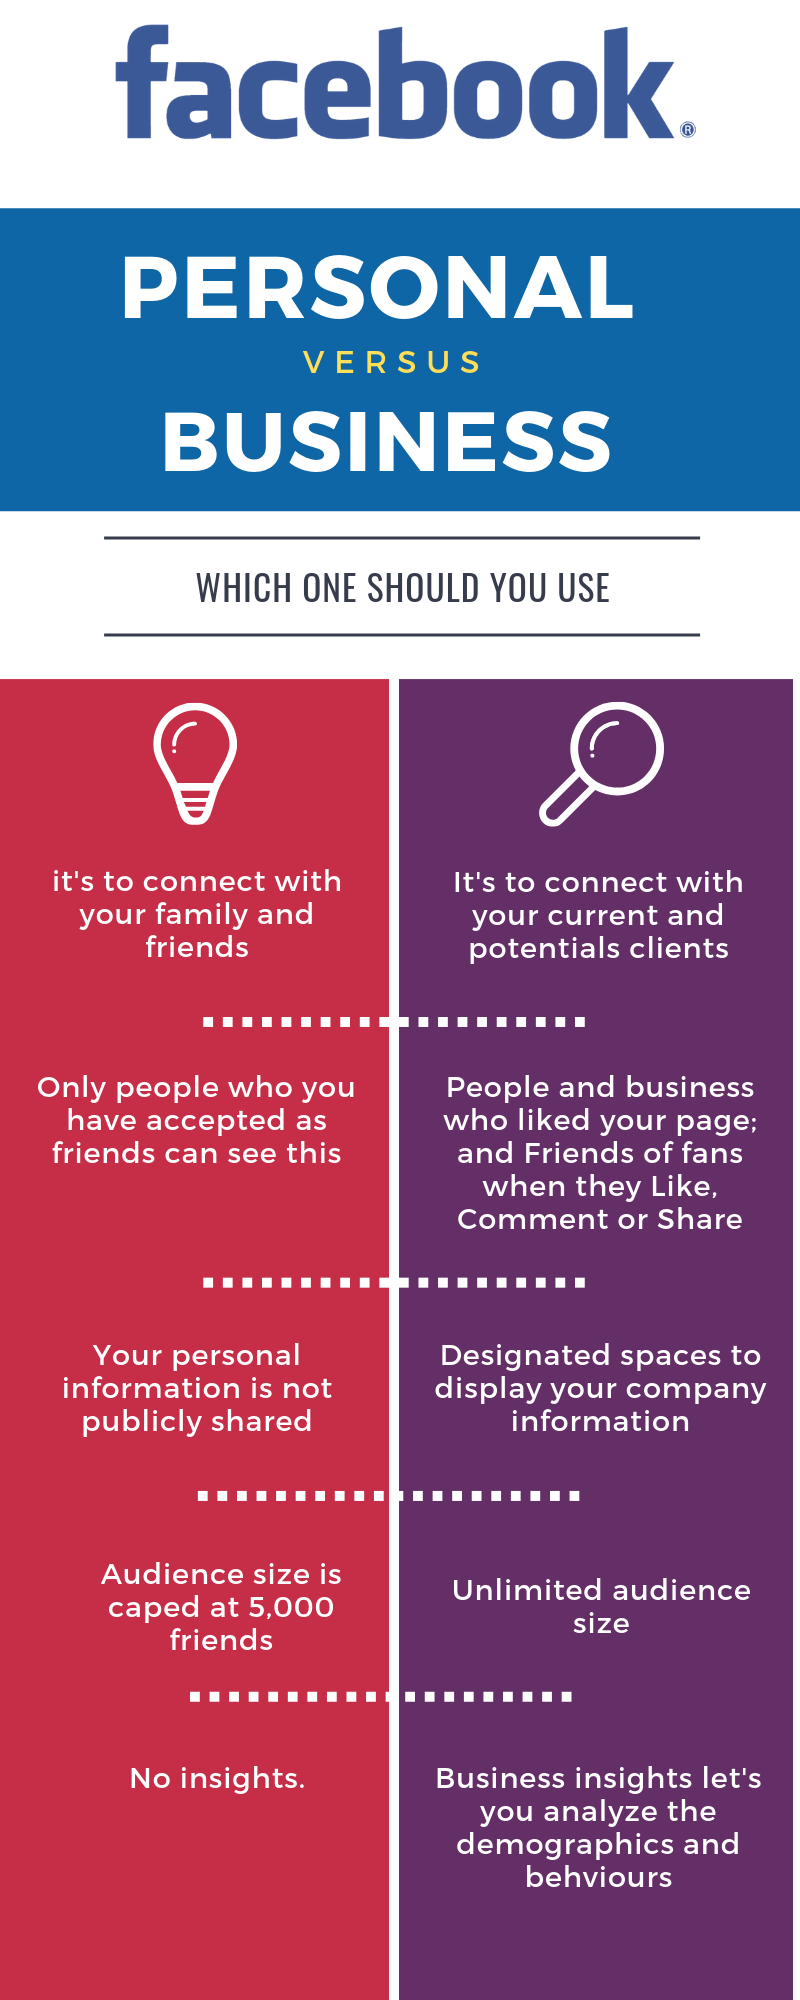 Facebook Profile vs Business Page: 8 Things You Need to Know